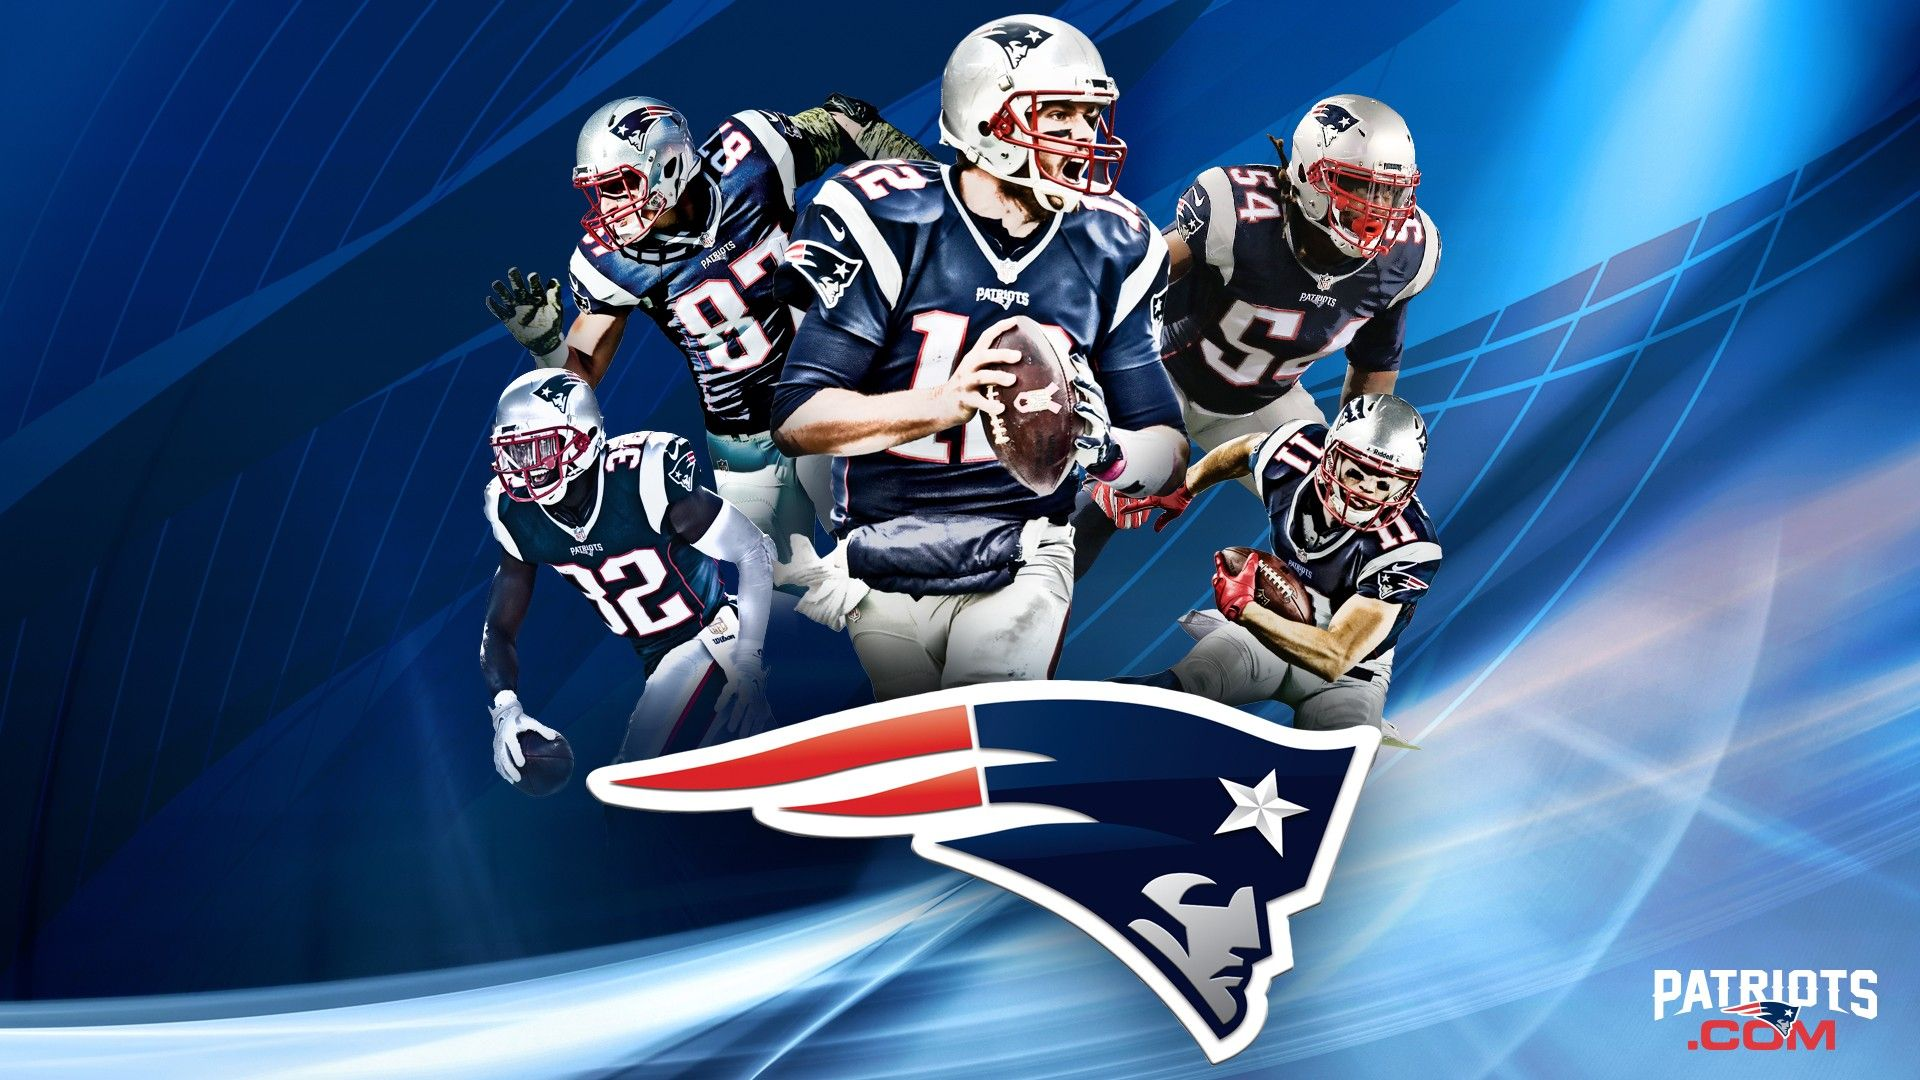 New England Patriots For Desktop Wallpaper